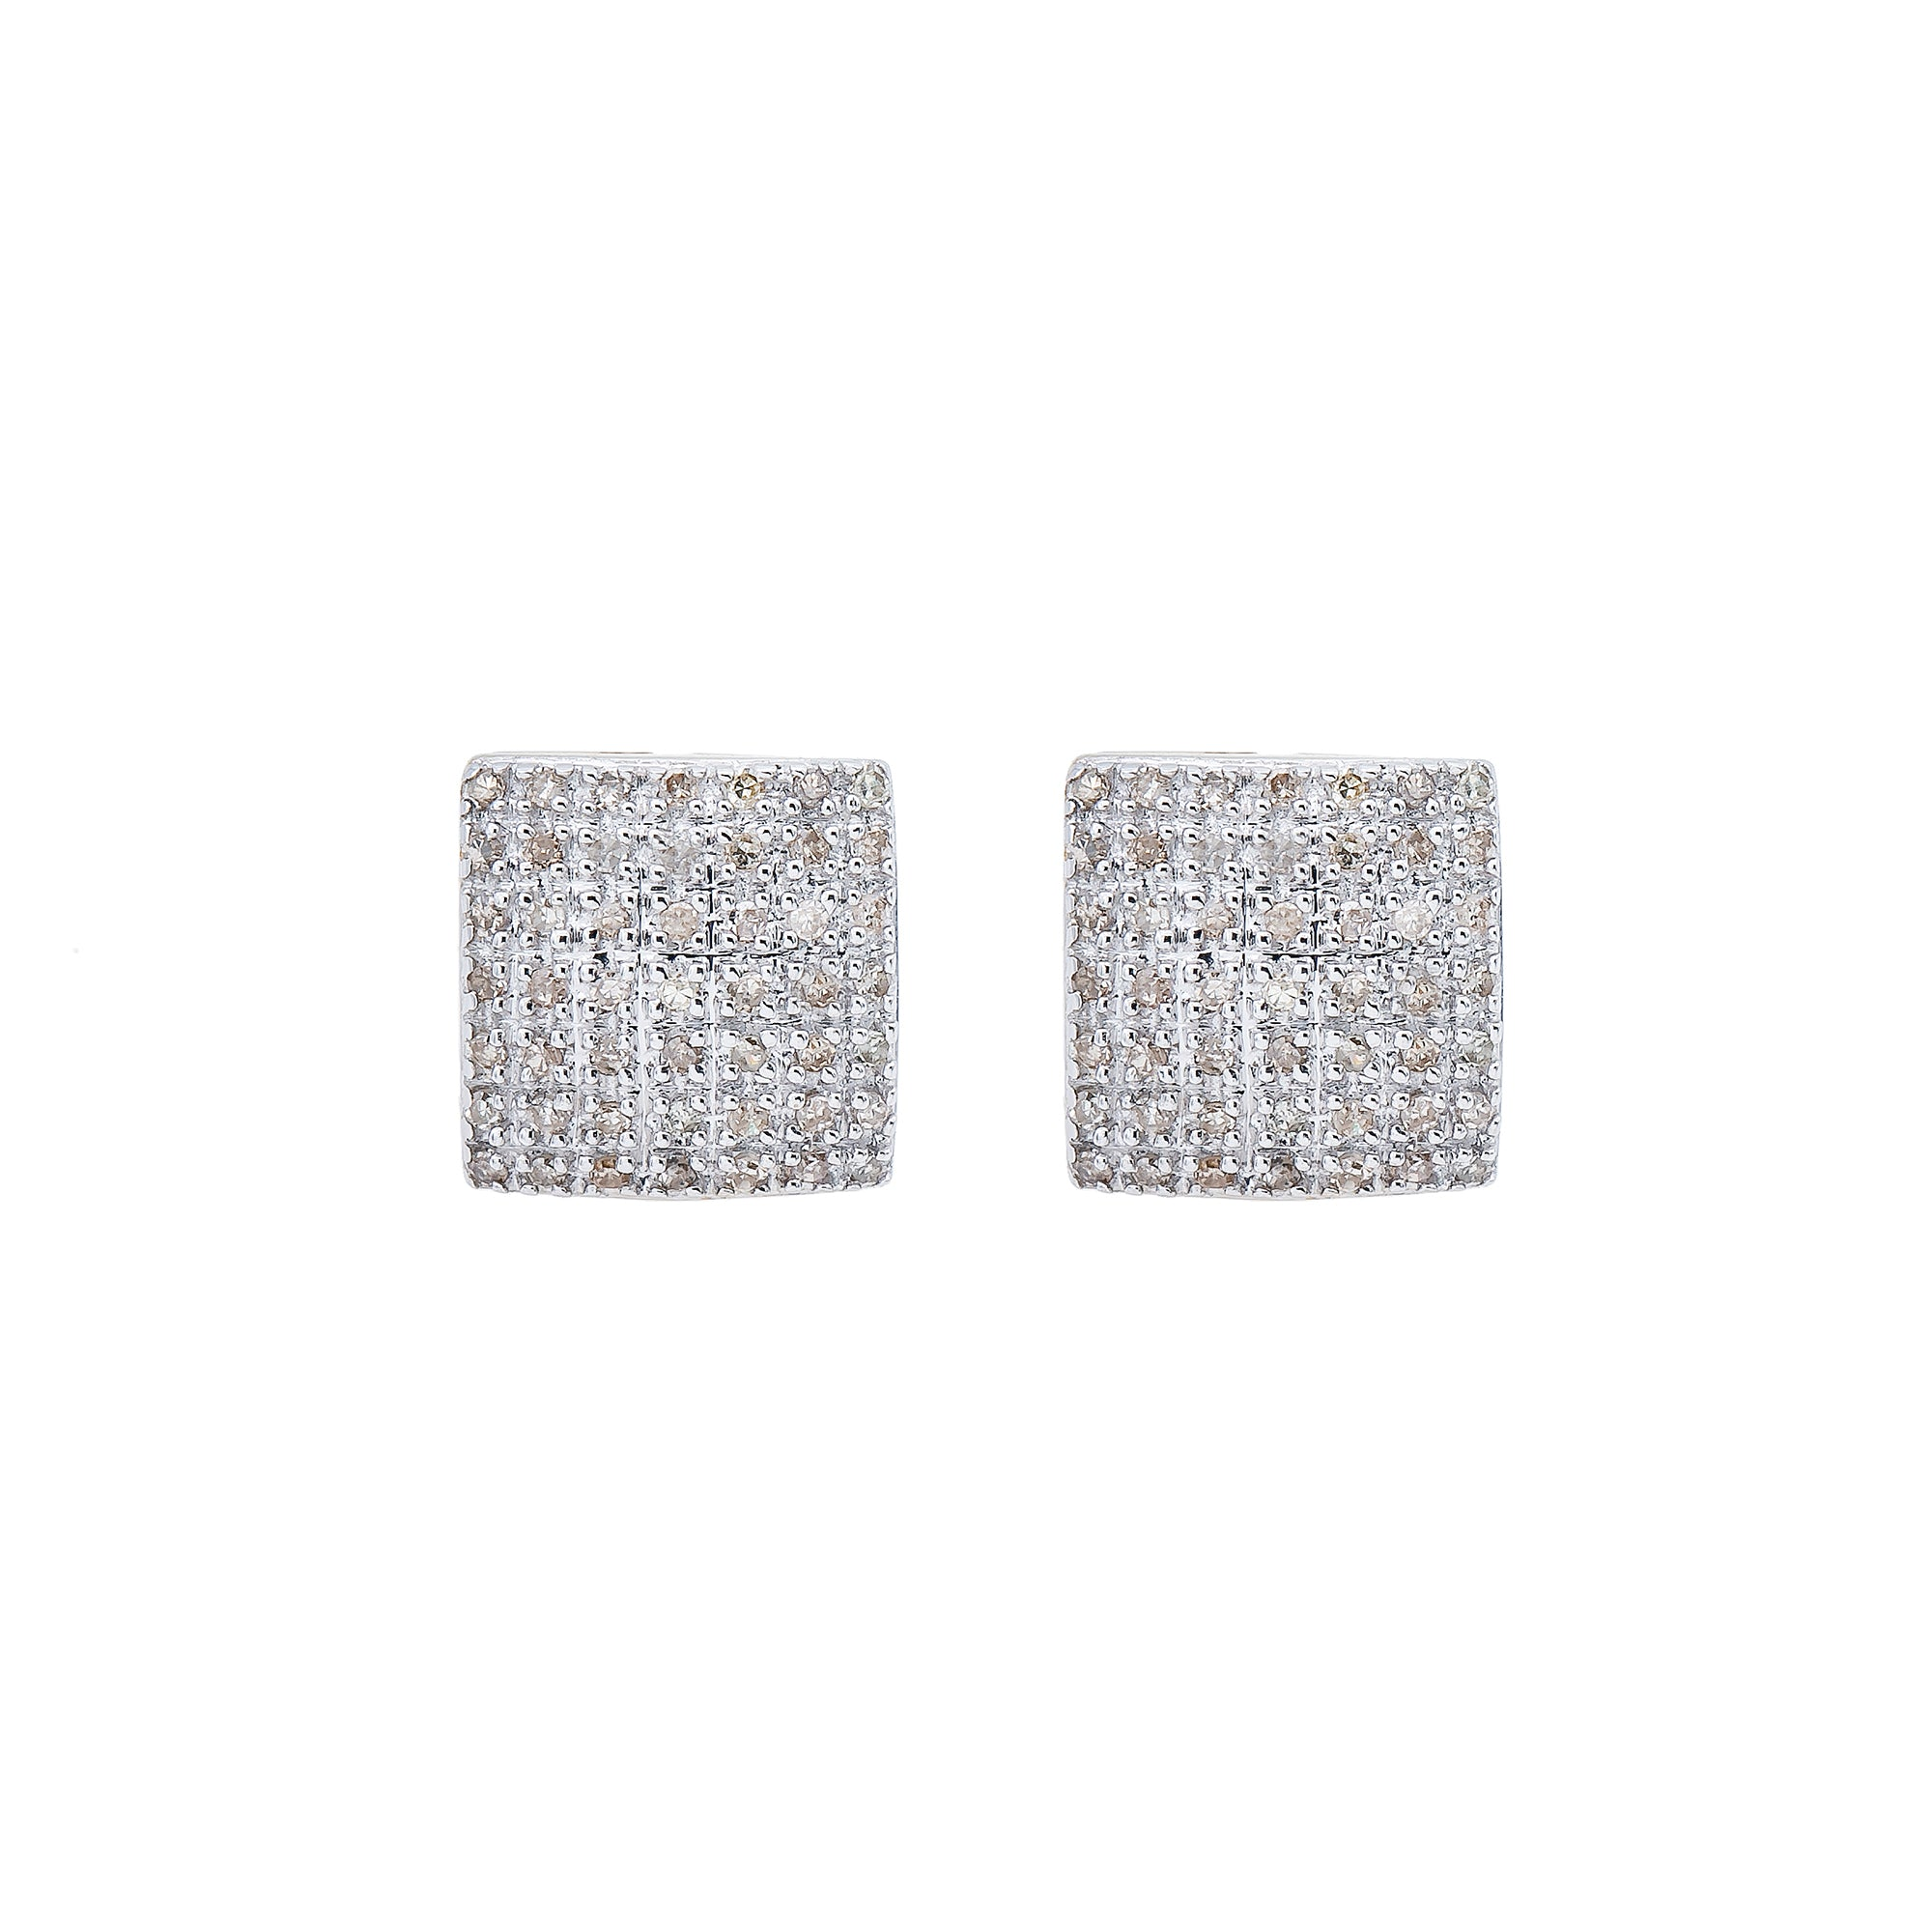 10K Yellow Gold Unisex Earrings with 0.43 CT Diamond